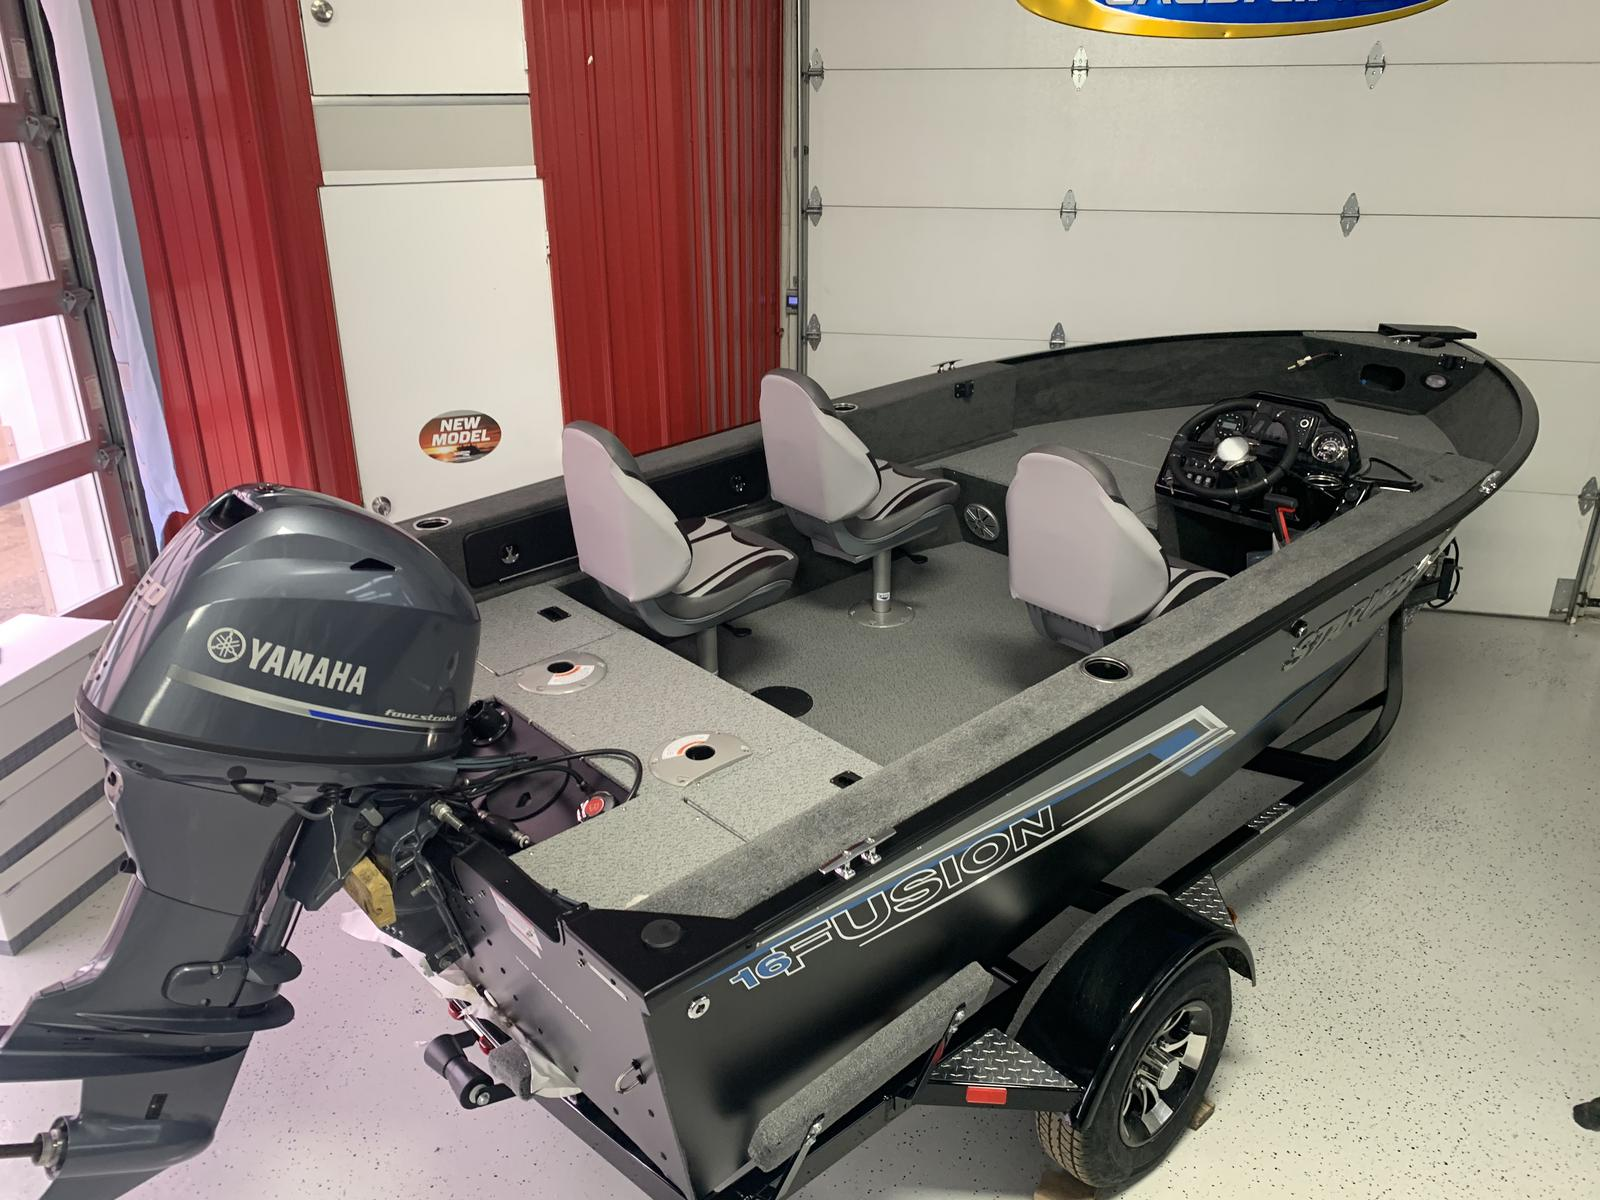 2020 Starweld boat for sale, model of the boat is Fusion 16 SC & Image # 1 of 8